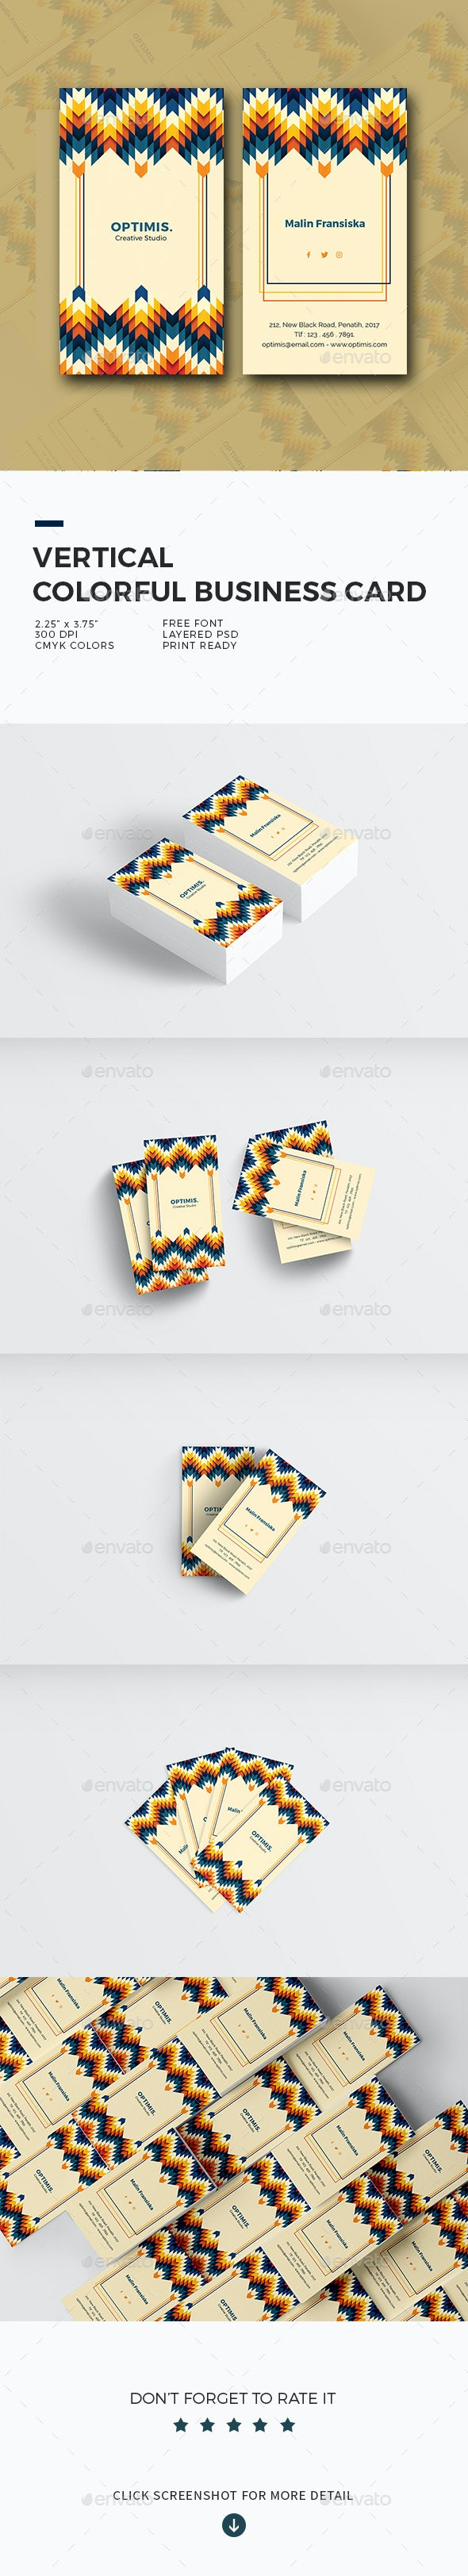 Vertical Colorful Business Card - Retro/Vintage Business Cards